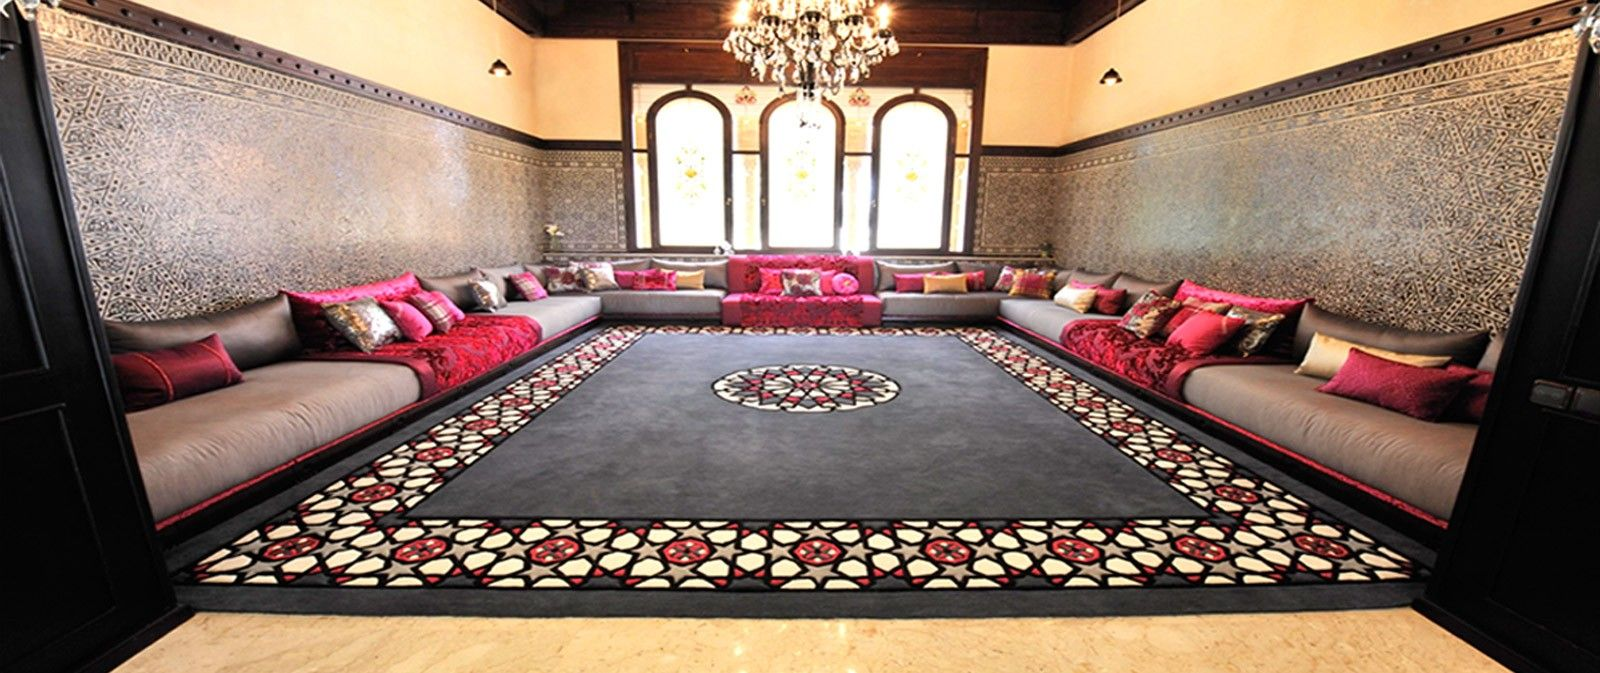 tapis artco pour salon marocain ides de dcoration intrieure interior design ideas pinterest design ramadan and salon marocain - Salon Moderne Maroc